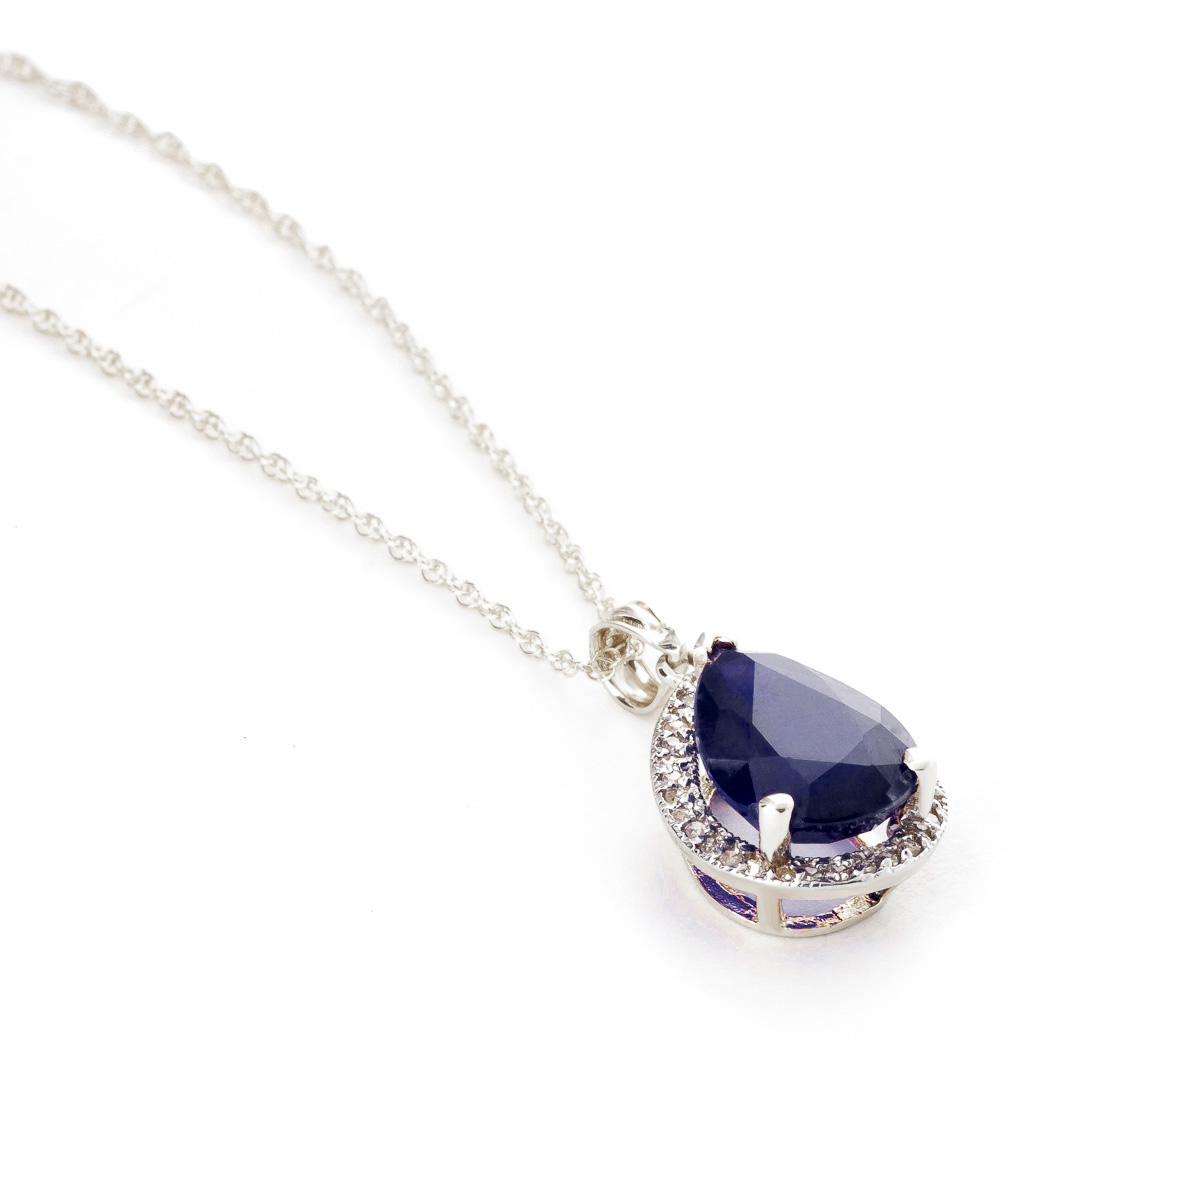 Sapphire Halo Pendant Necklace 5.26 ctw in 9ct White Gold